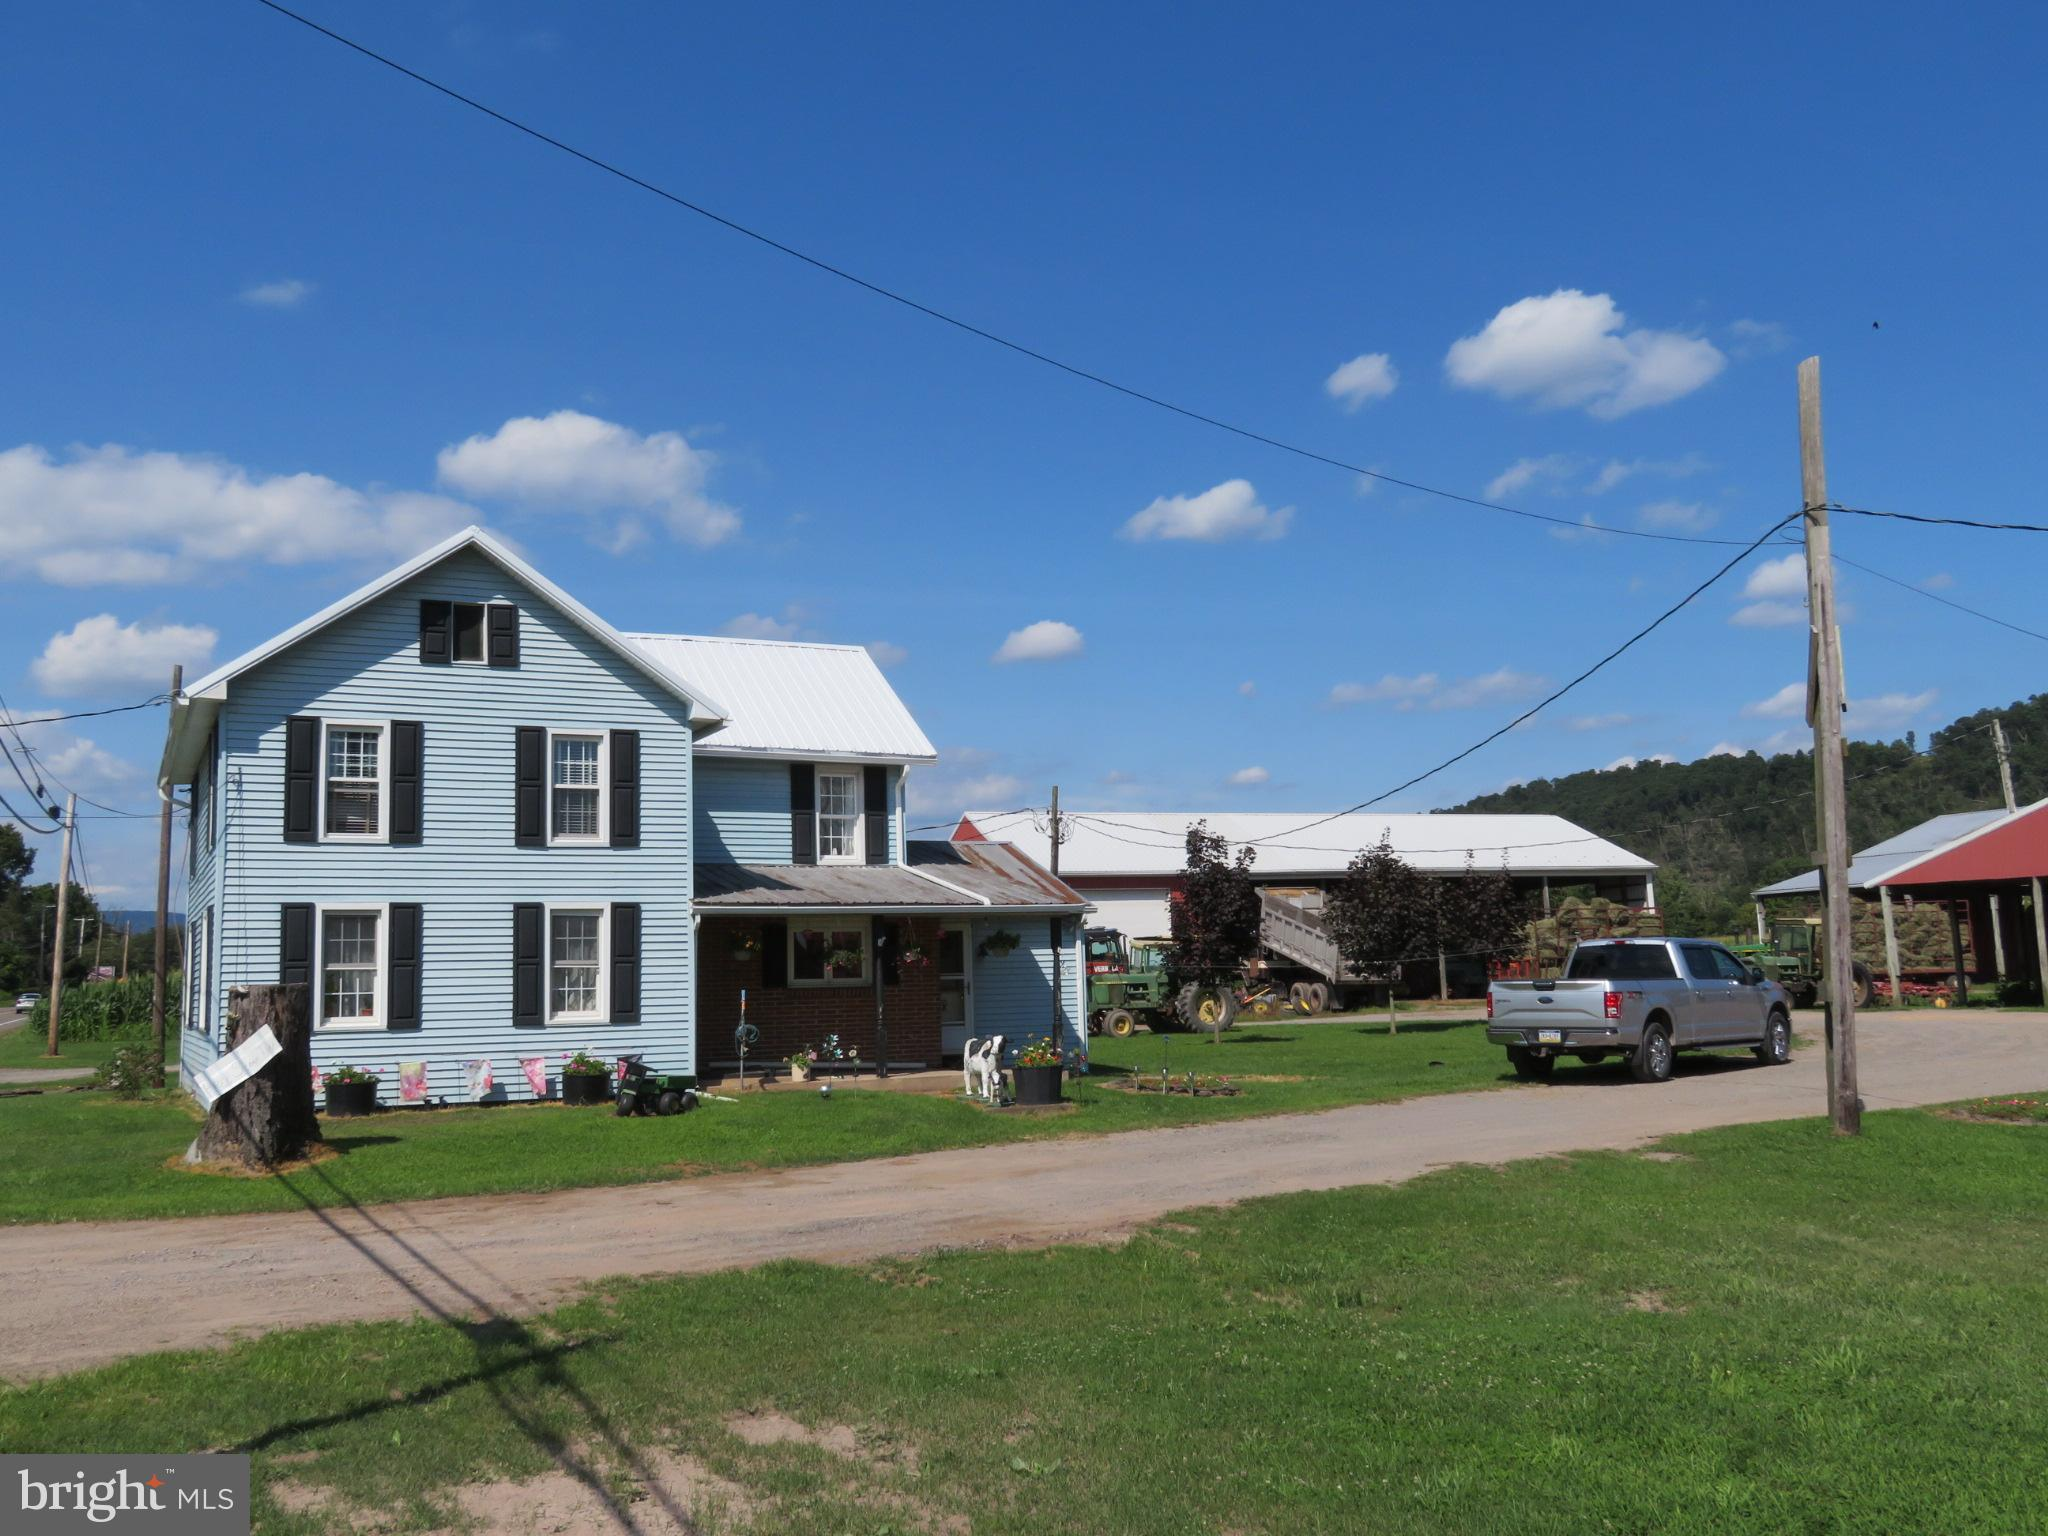 4502 Red Rock Rd, Benton, PA, 17814